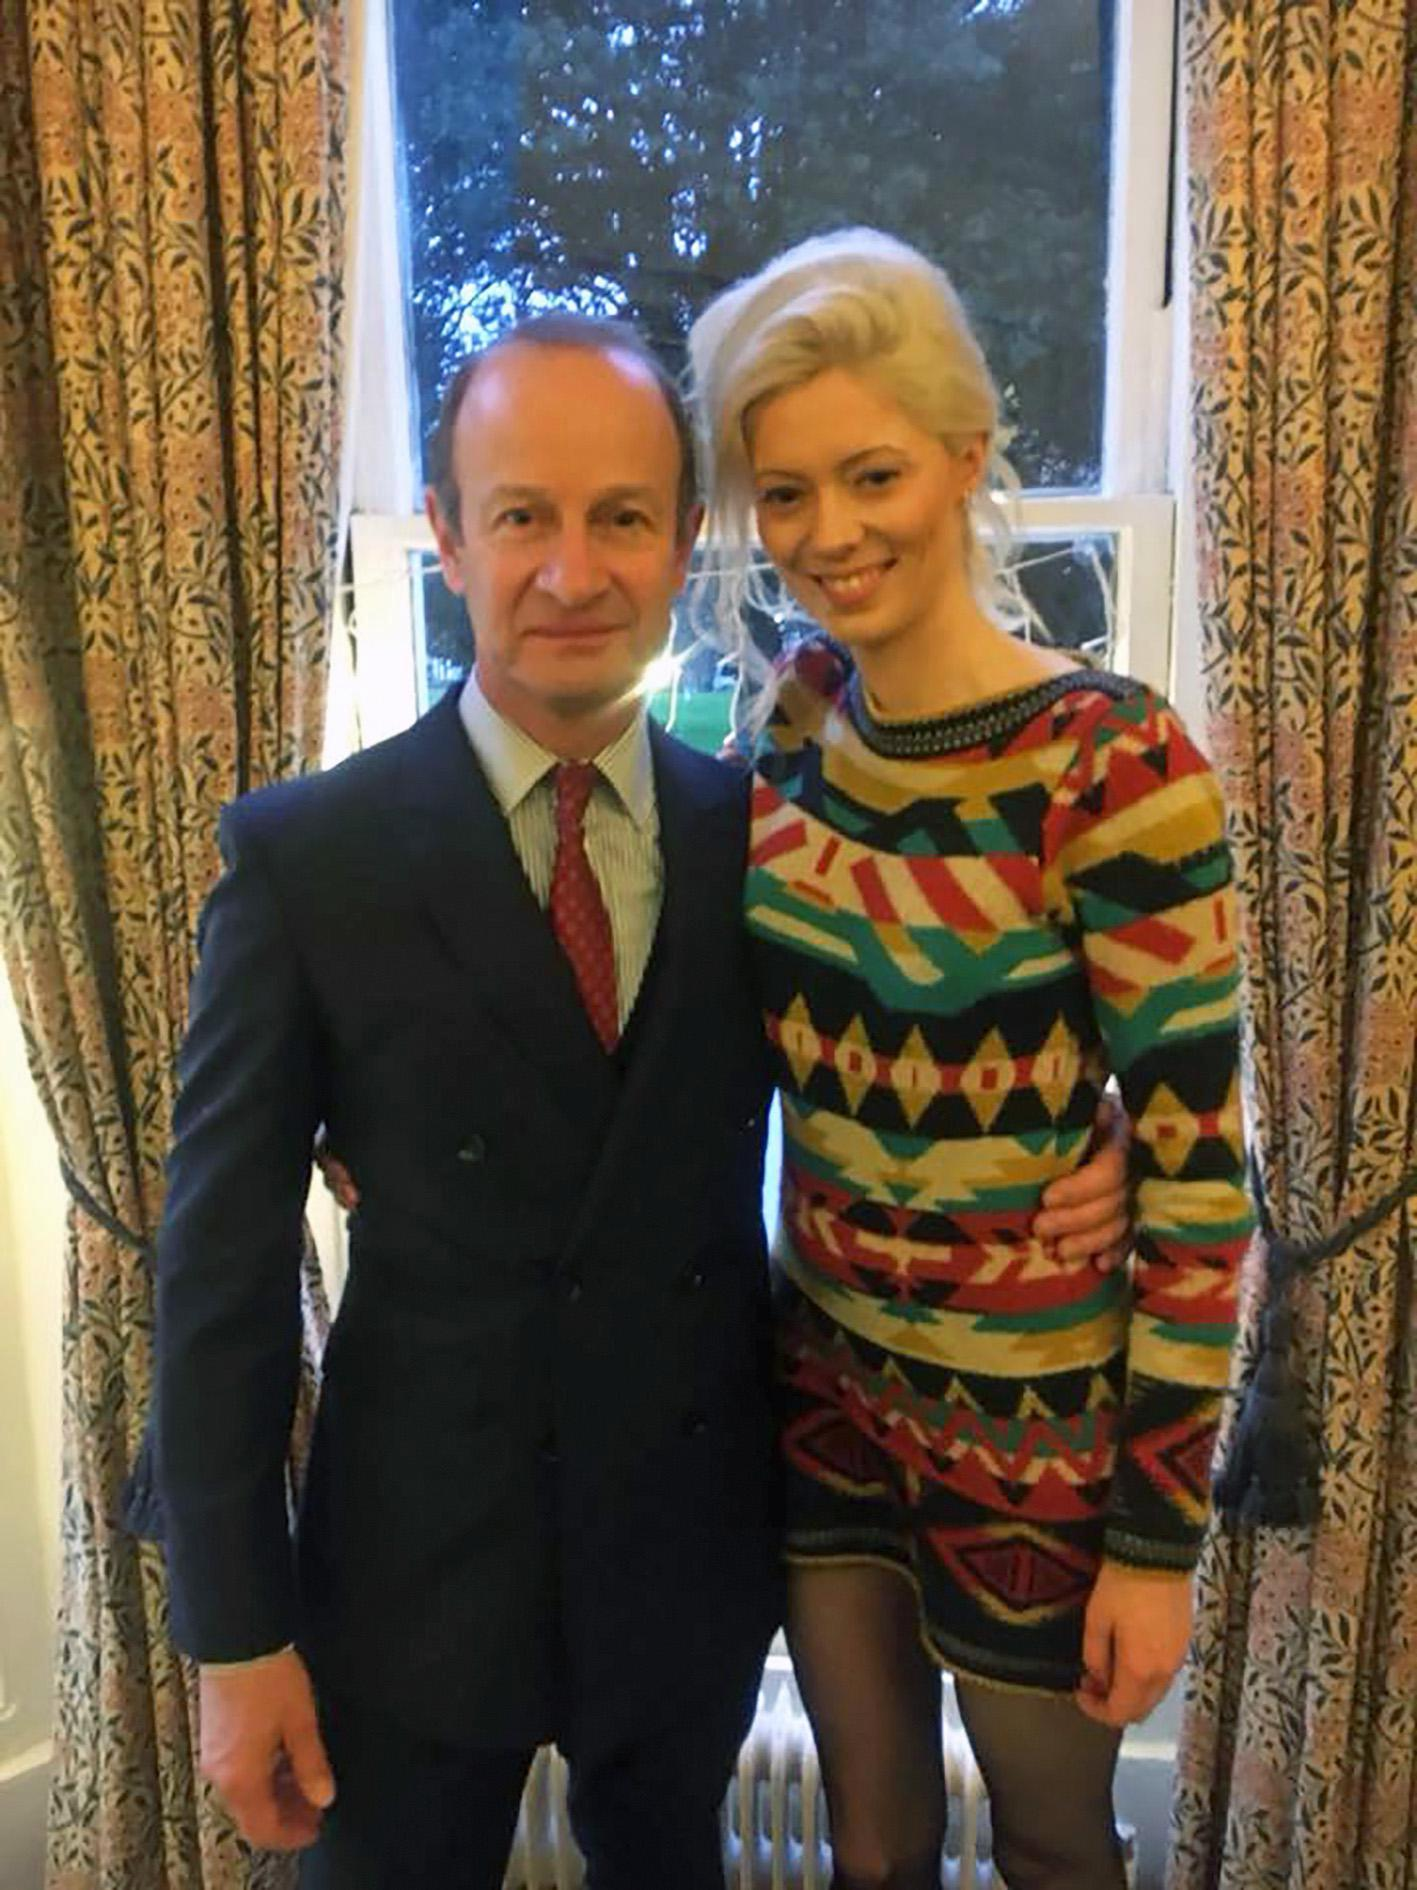 Henry Bolton's ex-girlfriend Jo Marney gives him over a thousand pounds of her own cash and pledges he'll 'never be alone'